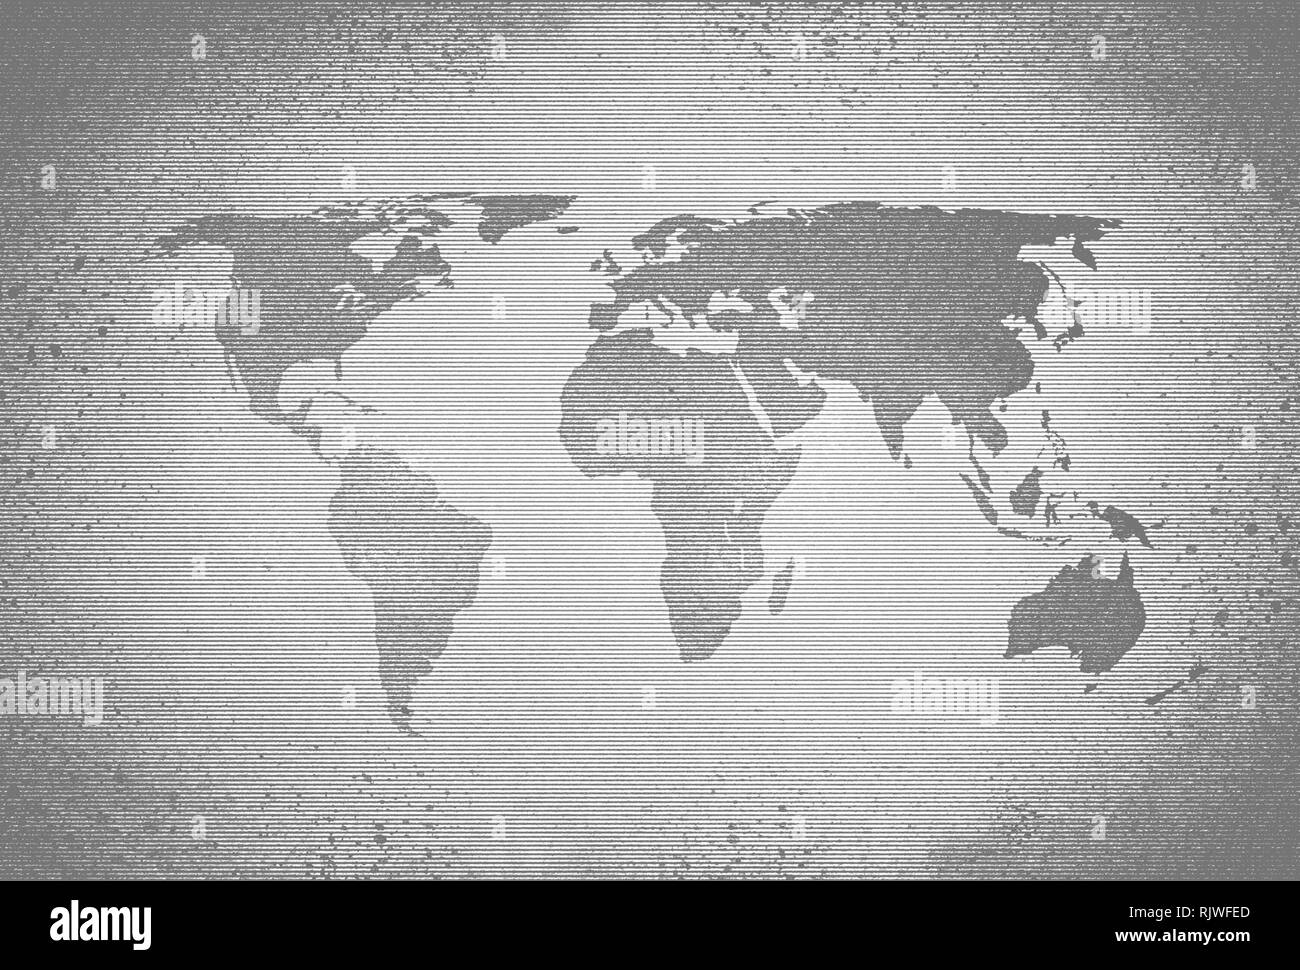 Black And White World Map With Countries.World Map Black And White Countries Stock Photos World Map Black